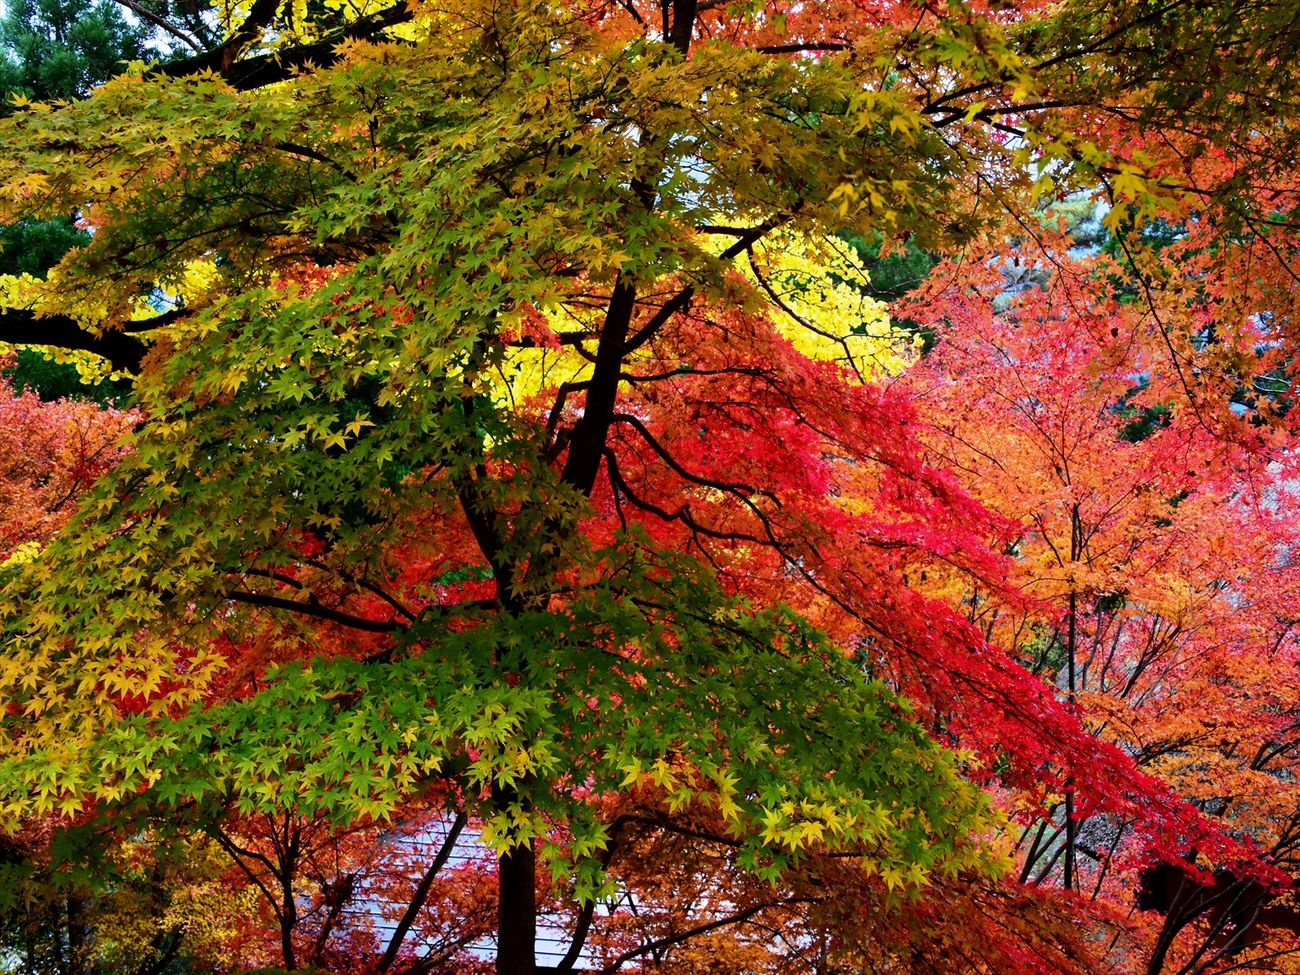 Backgrounds Beauty In Nature Close-up D7200 Day Growth Nature Nikon D7200 No People Outdoors Tree 五家荘 平家の里 紅葉 紅葉狩り